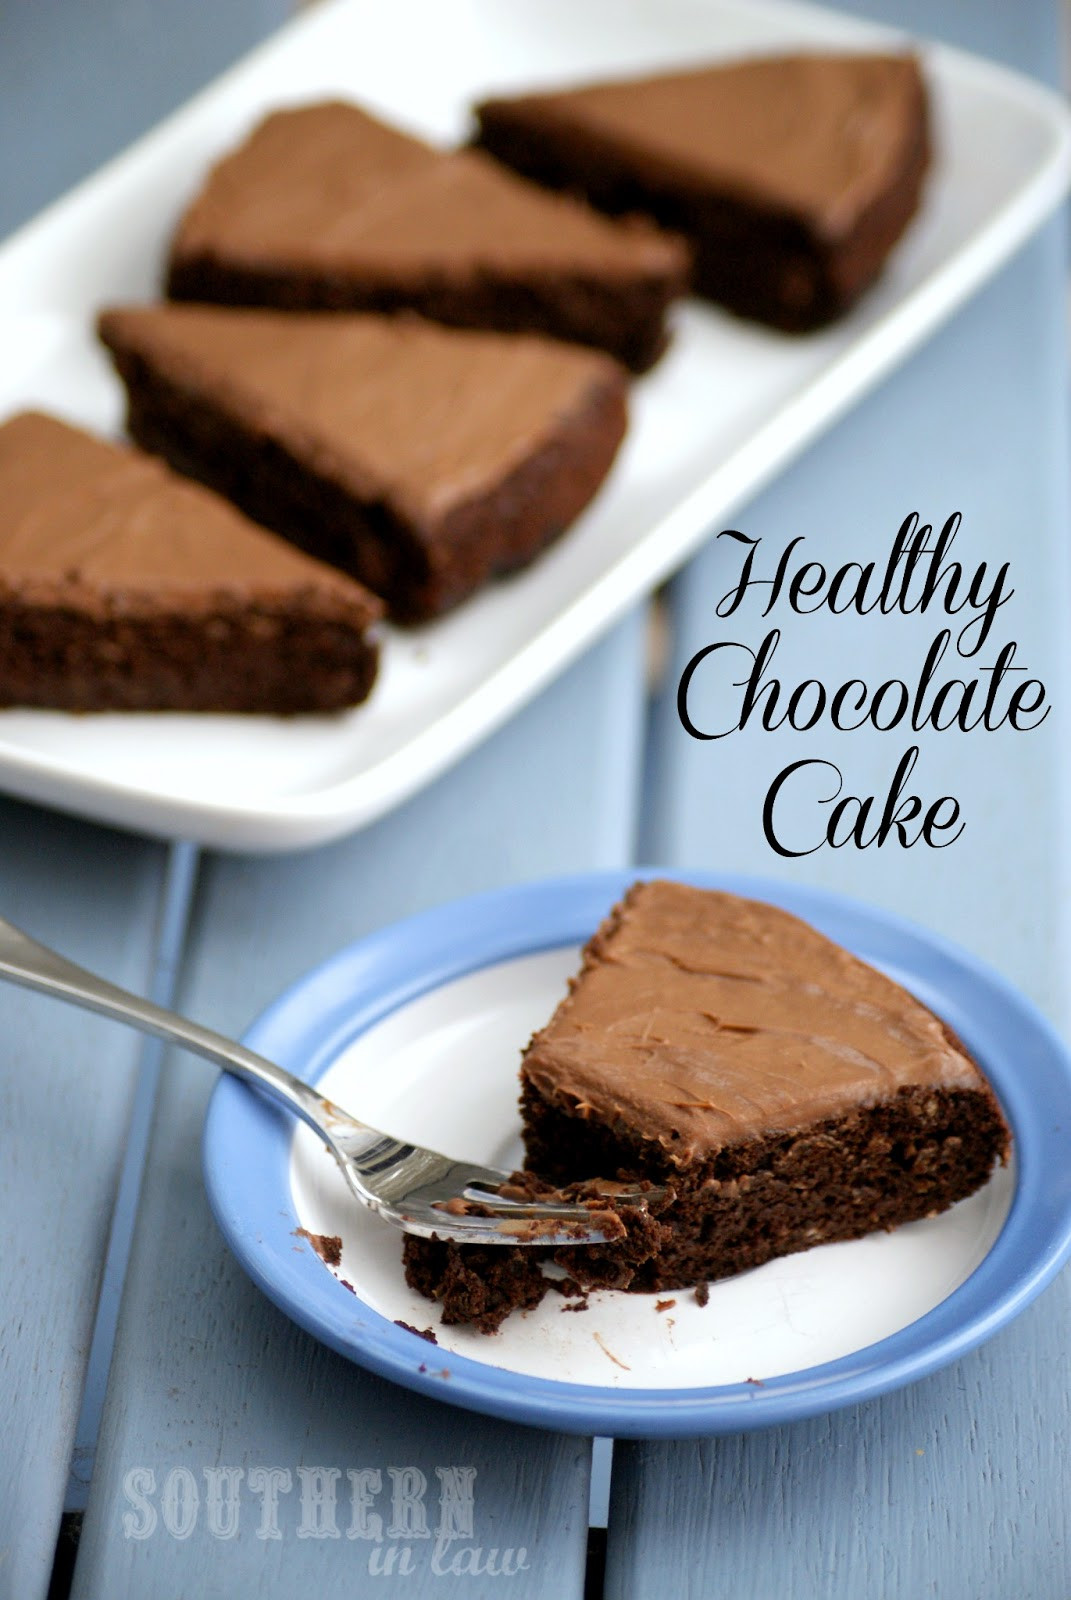 Healthy Chocolate Cake With Applesauce  Southern In Law Recipe Healthy Chocolate Cake Vegan too